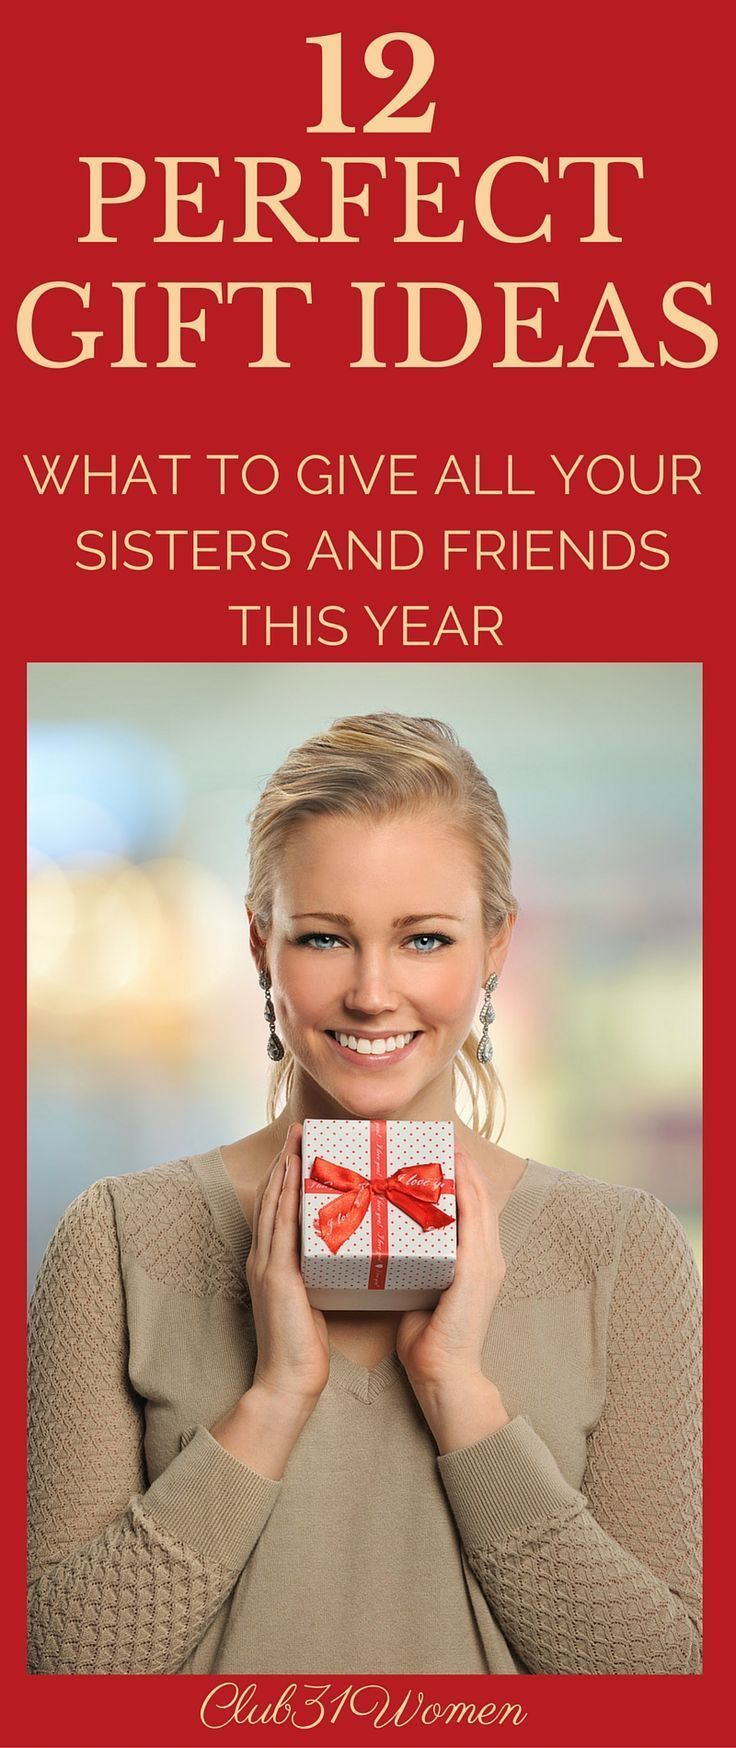 12 perfect gift ideas what to give all your sisters and